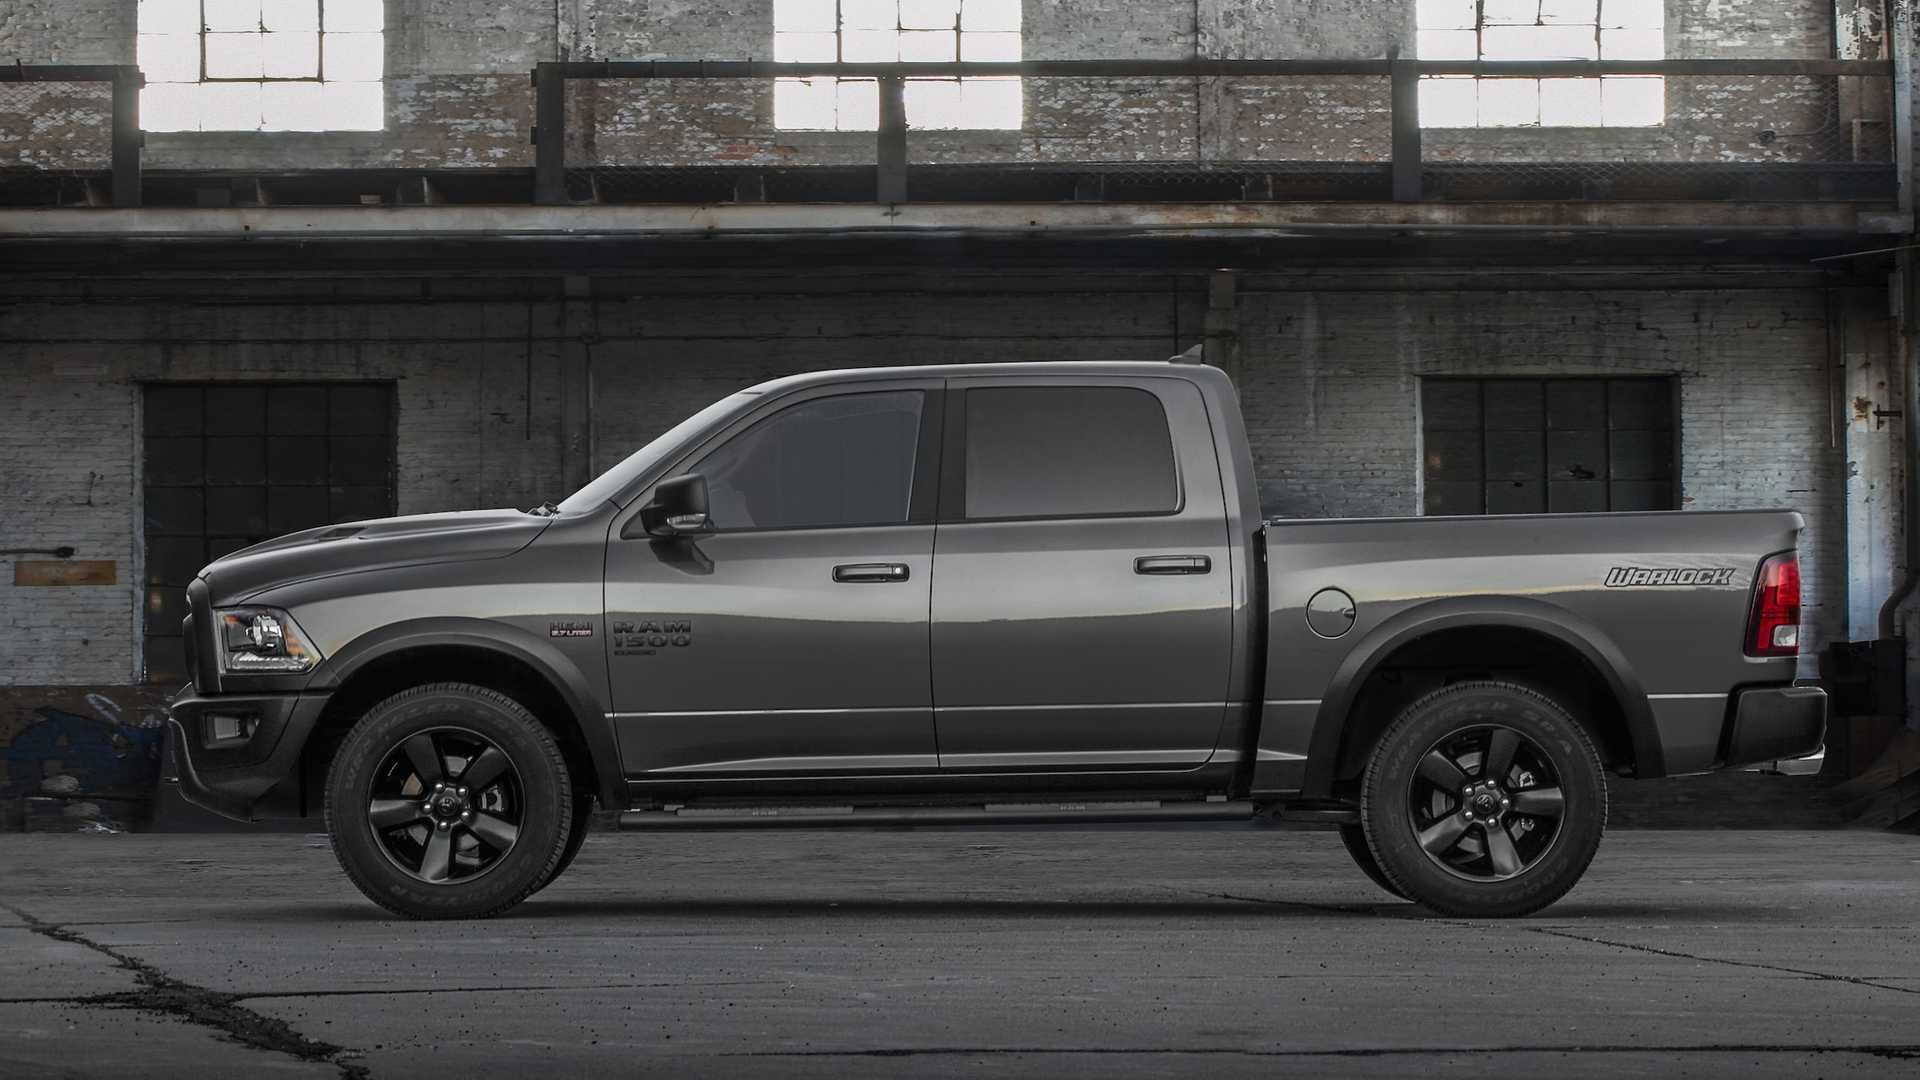 New Ram Trucks Coming Midsize Pricing With Full Size Capabilities Auto Motor Und Sport Vehicles Ram Trucks